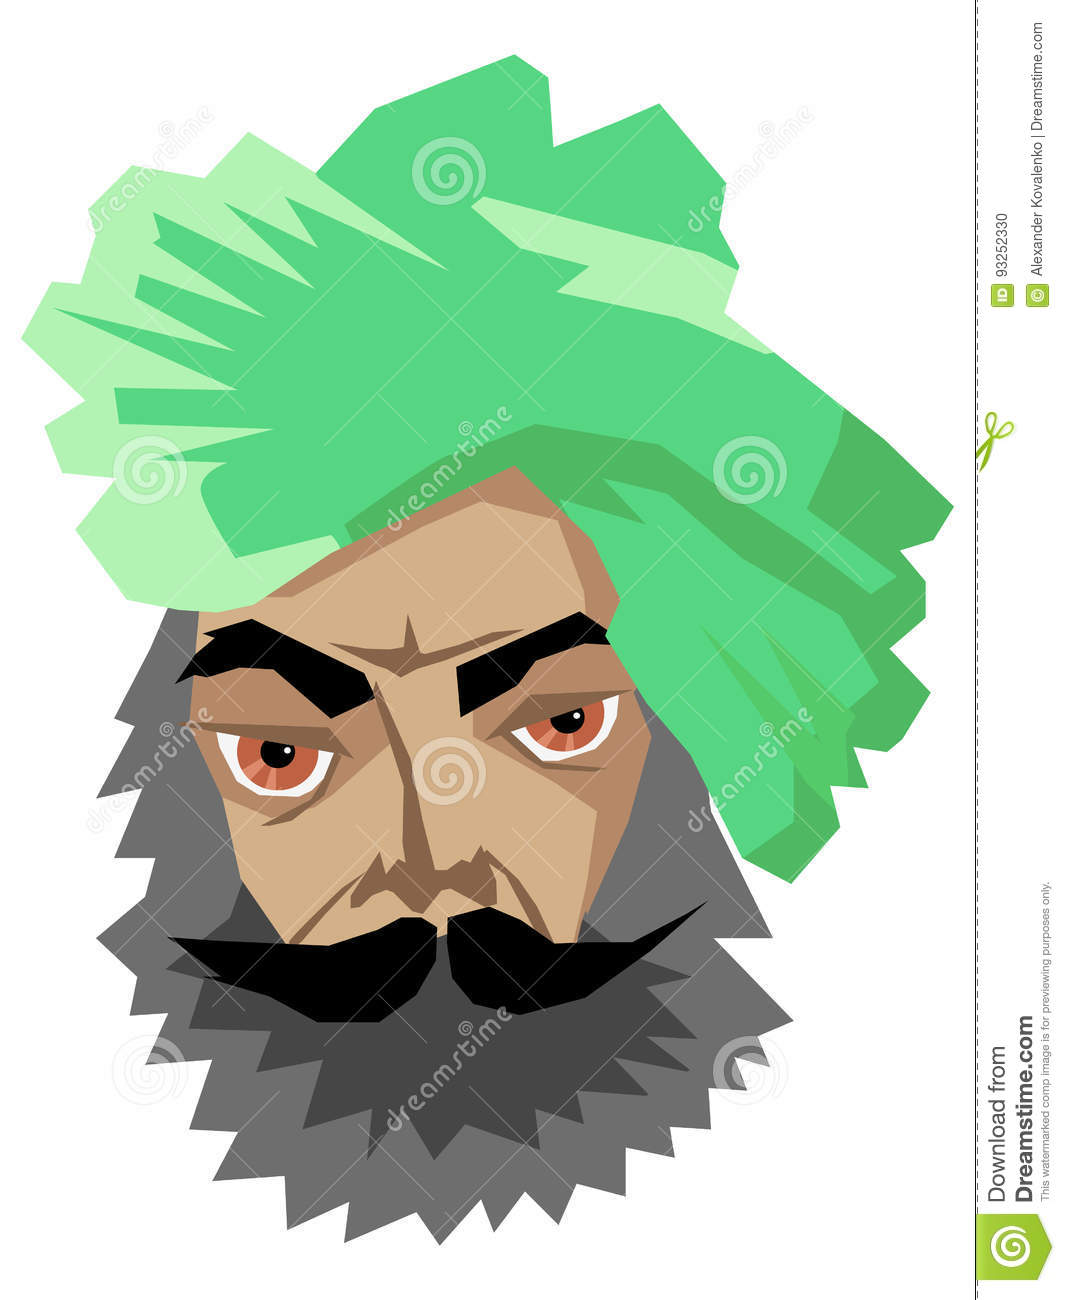 punjab cartoons illustrations amp vector stock images 699